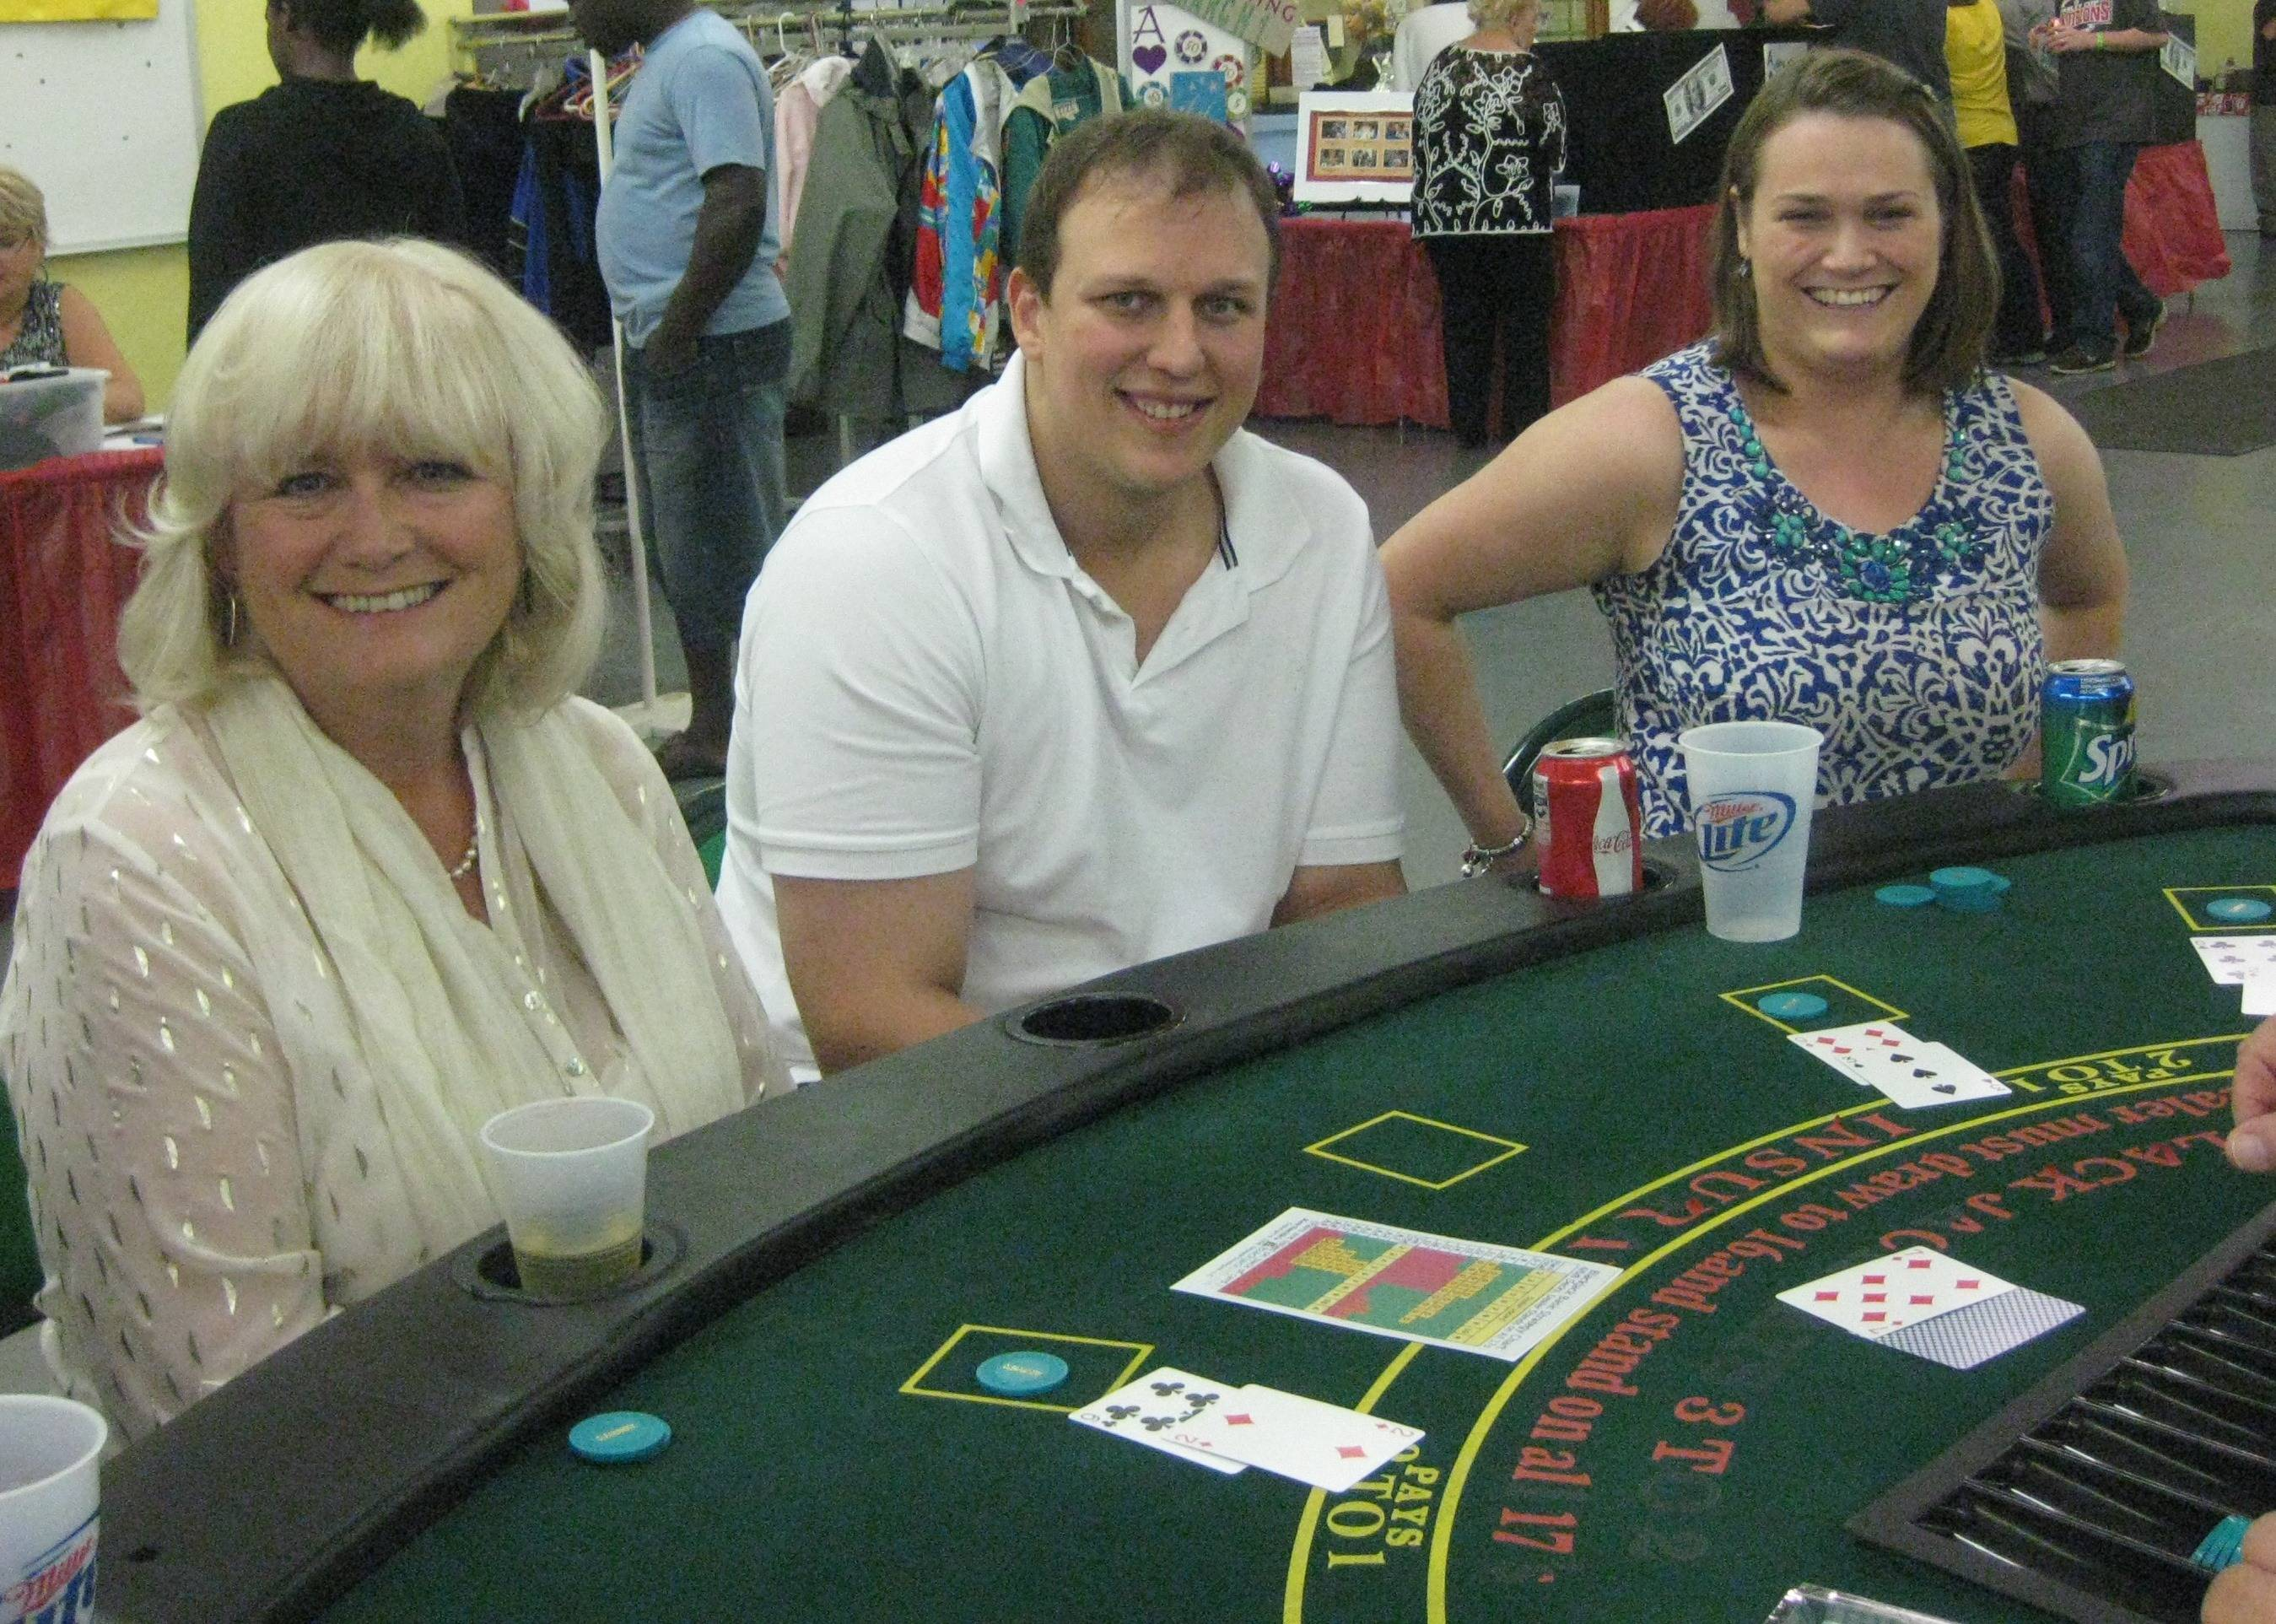 Aileen Brewis, left, joined daughter, Catherine and her husband John Mowat of Rolling Meadows for several hands of blackjack at Clearbrook's Fall Casino Night last October.